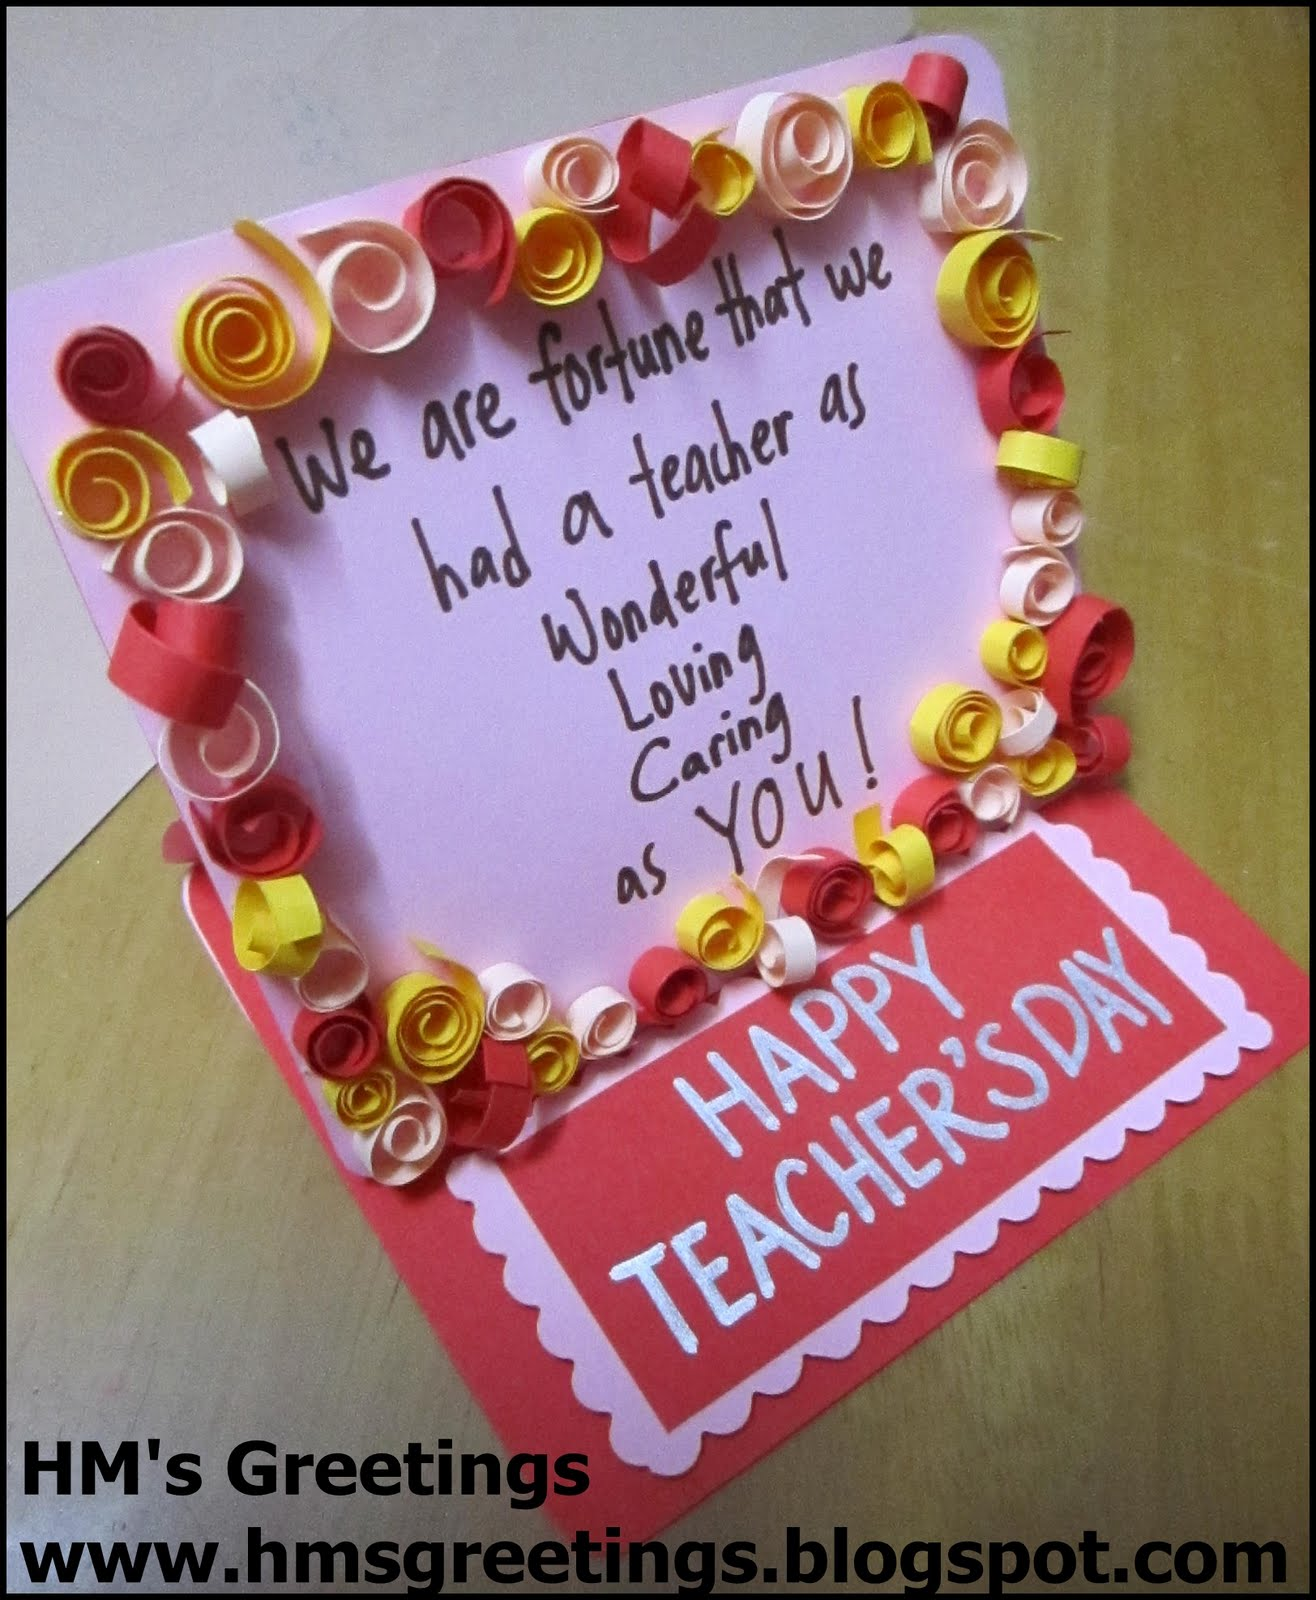 Teachers Day Card Making Ideas Part - 44: HMs Greetings: Teachers Day Card #1